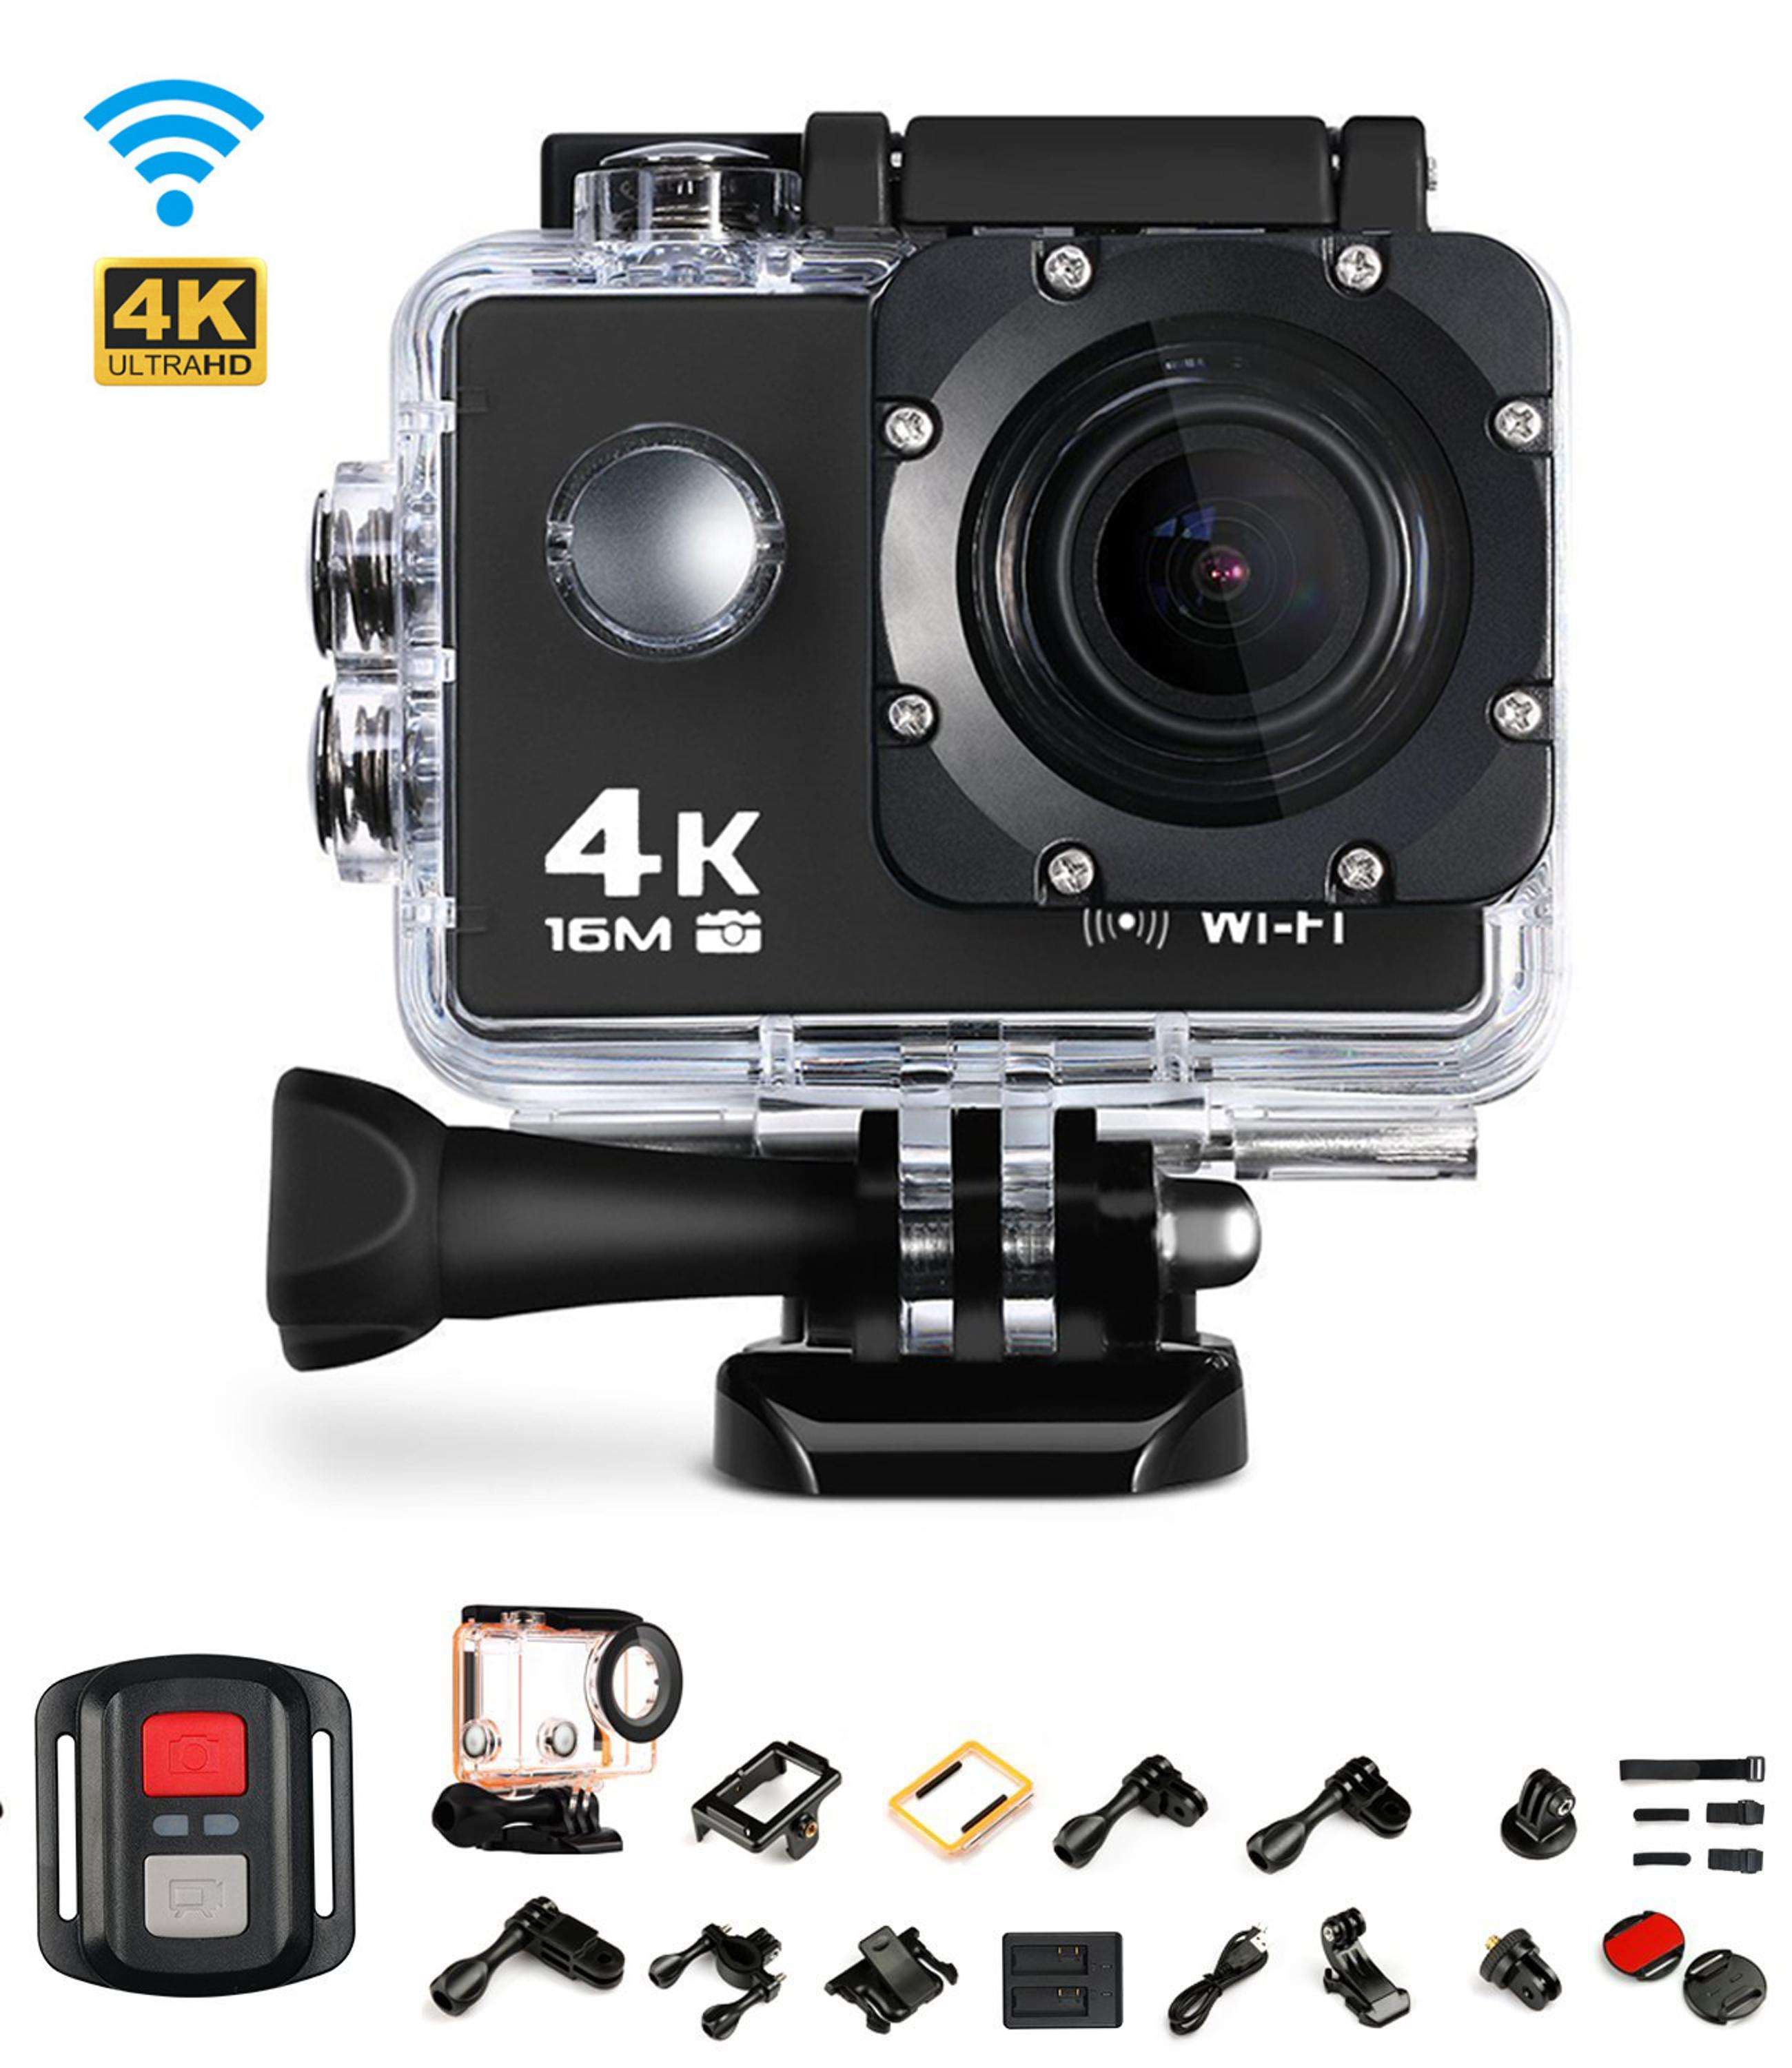 Hot Selling 2.0 inch LCD Ultra HD WiFi Sport action camera 4K 30M Waterproof digital video camera